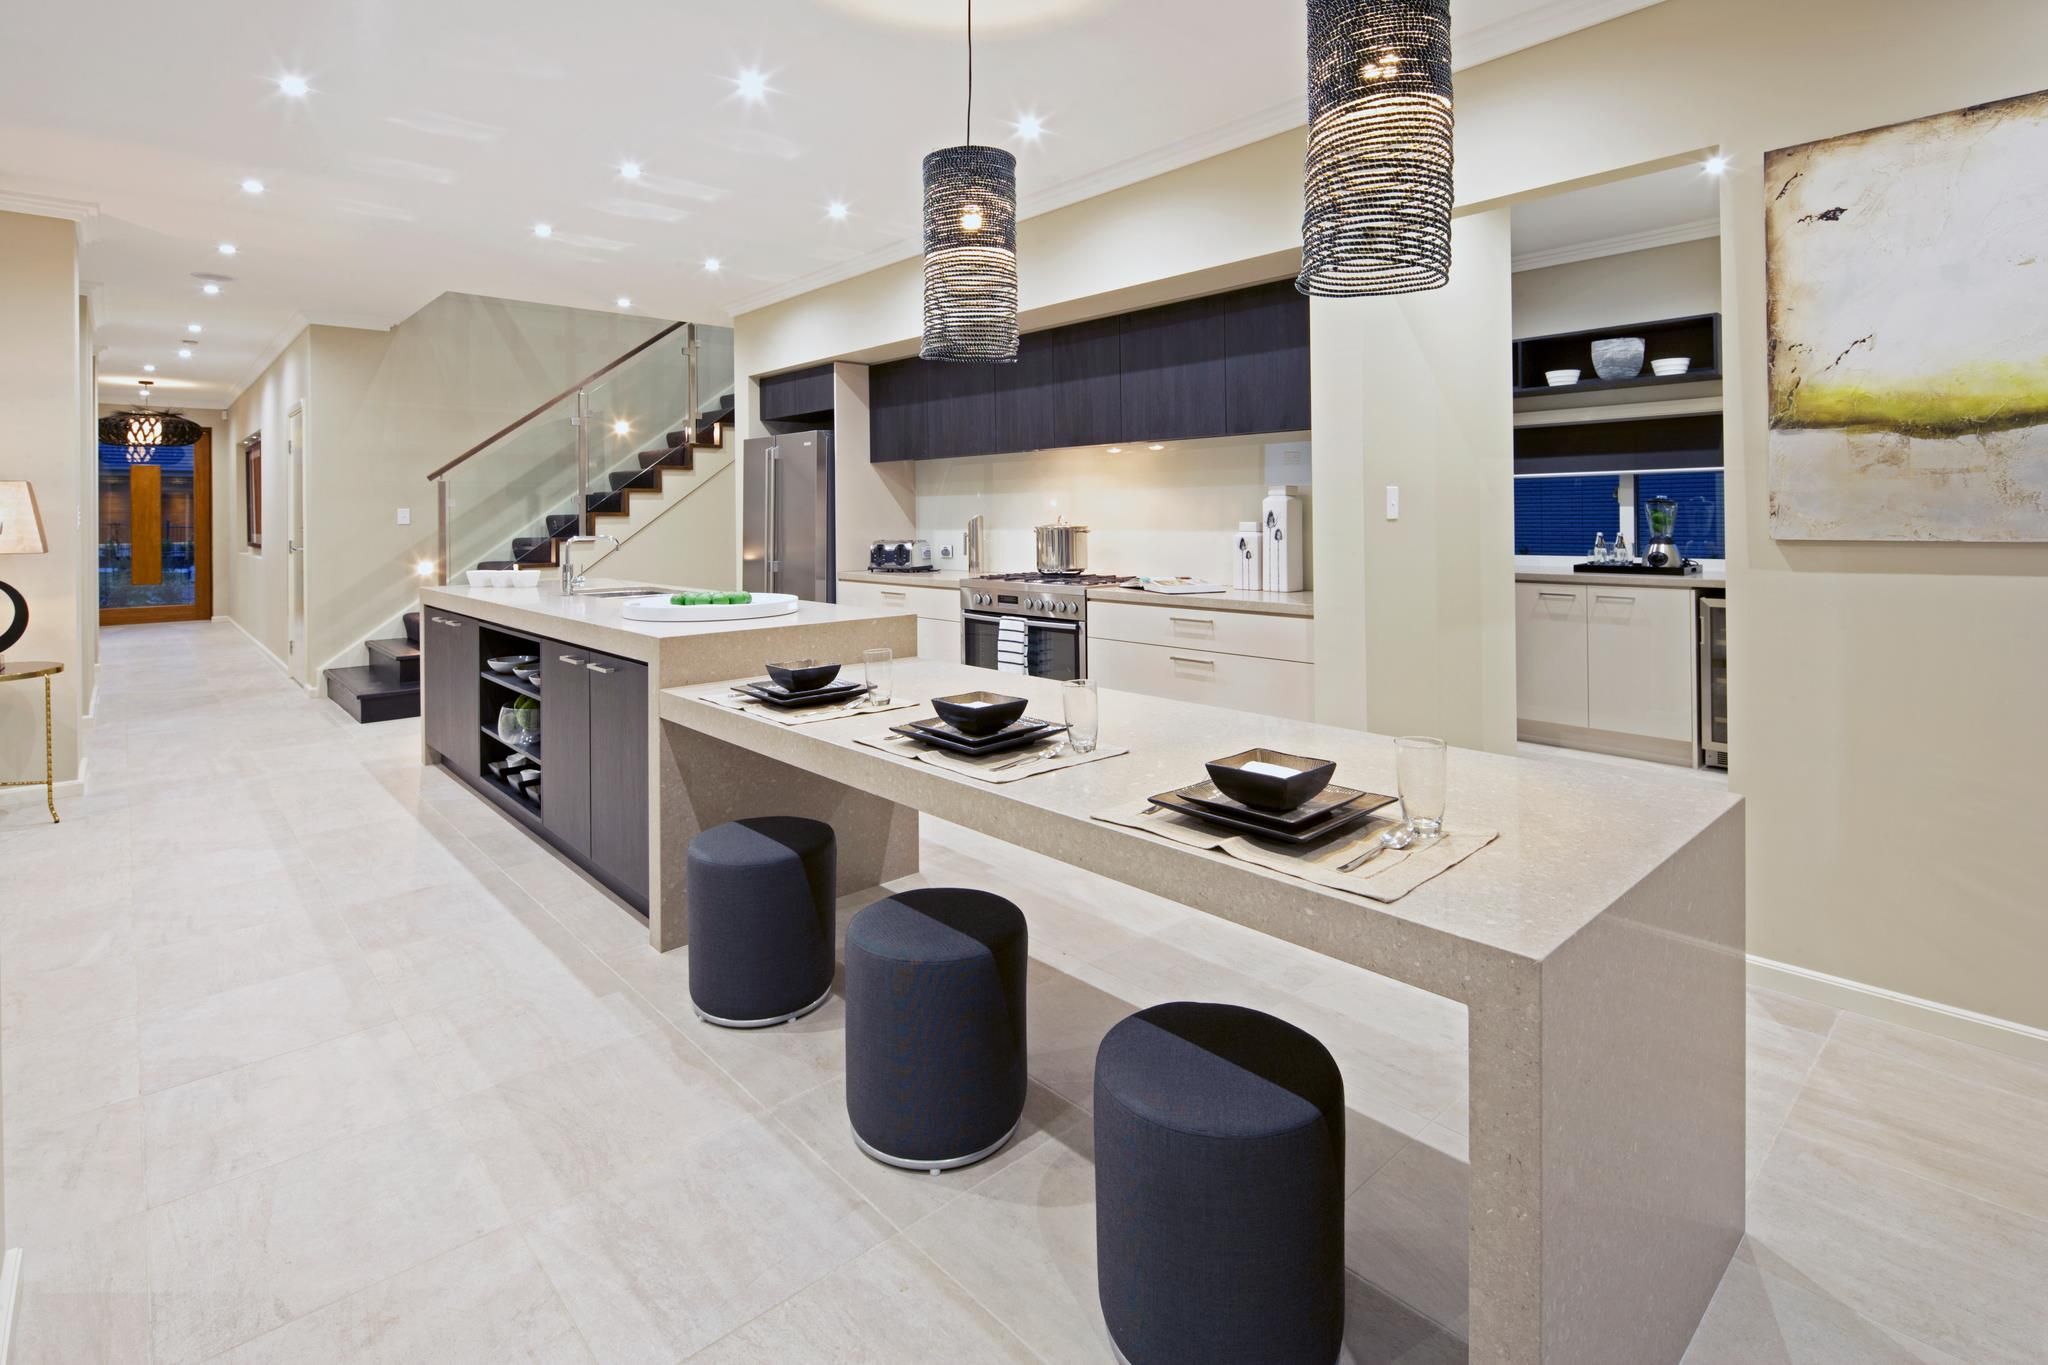 kitchen design considerations kitchen designs considerations exquisite kitchens 1157